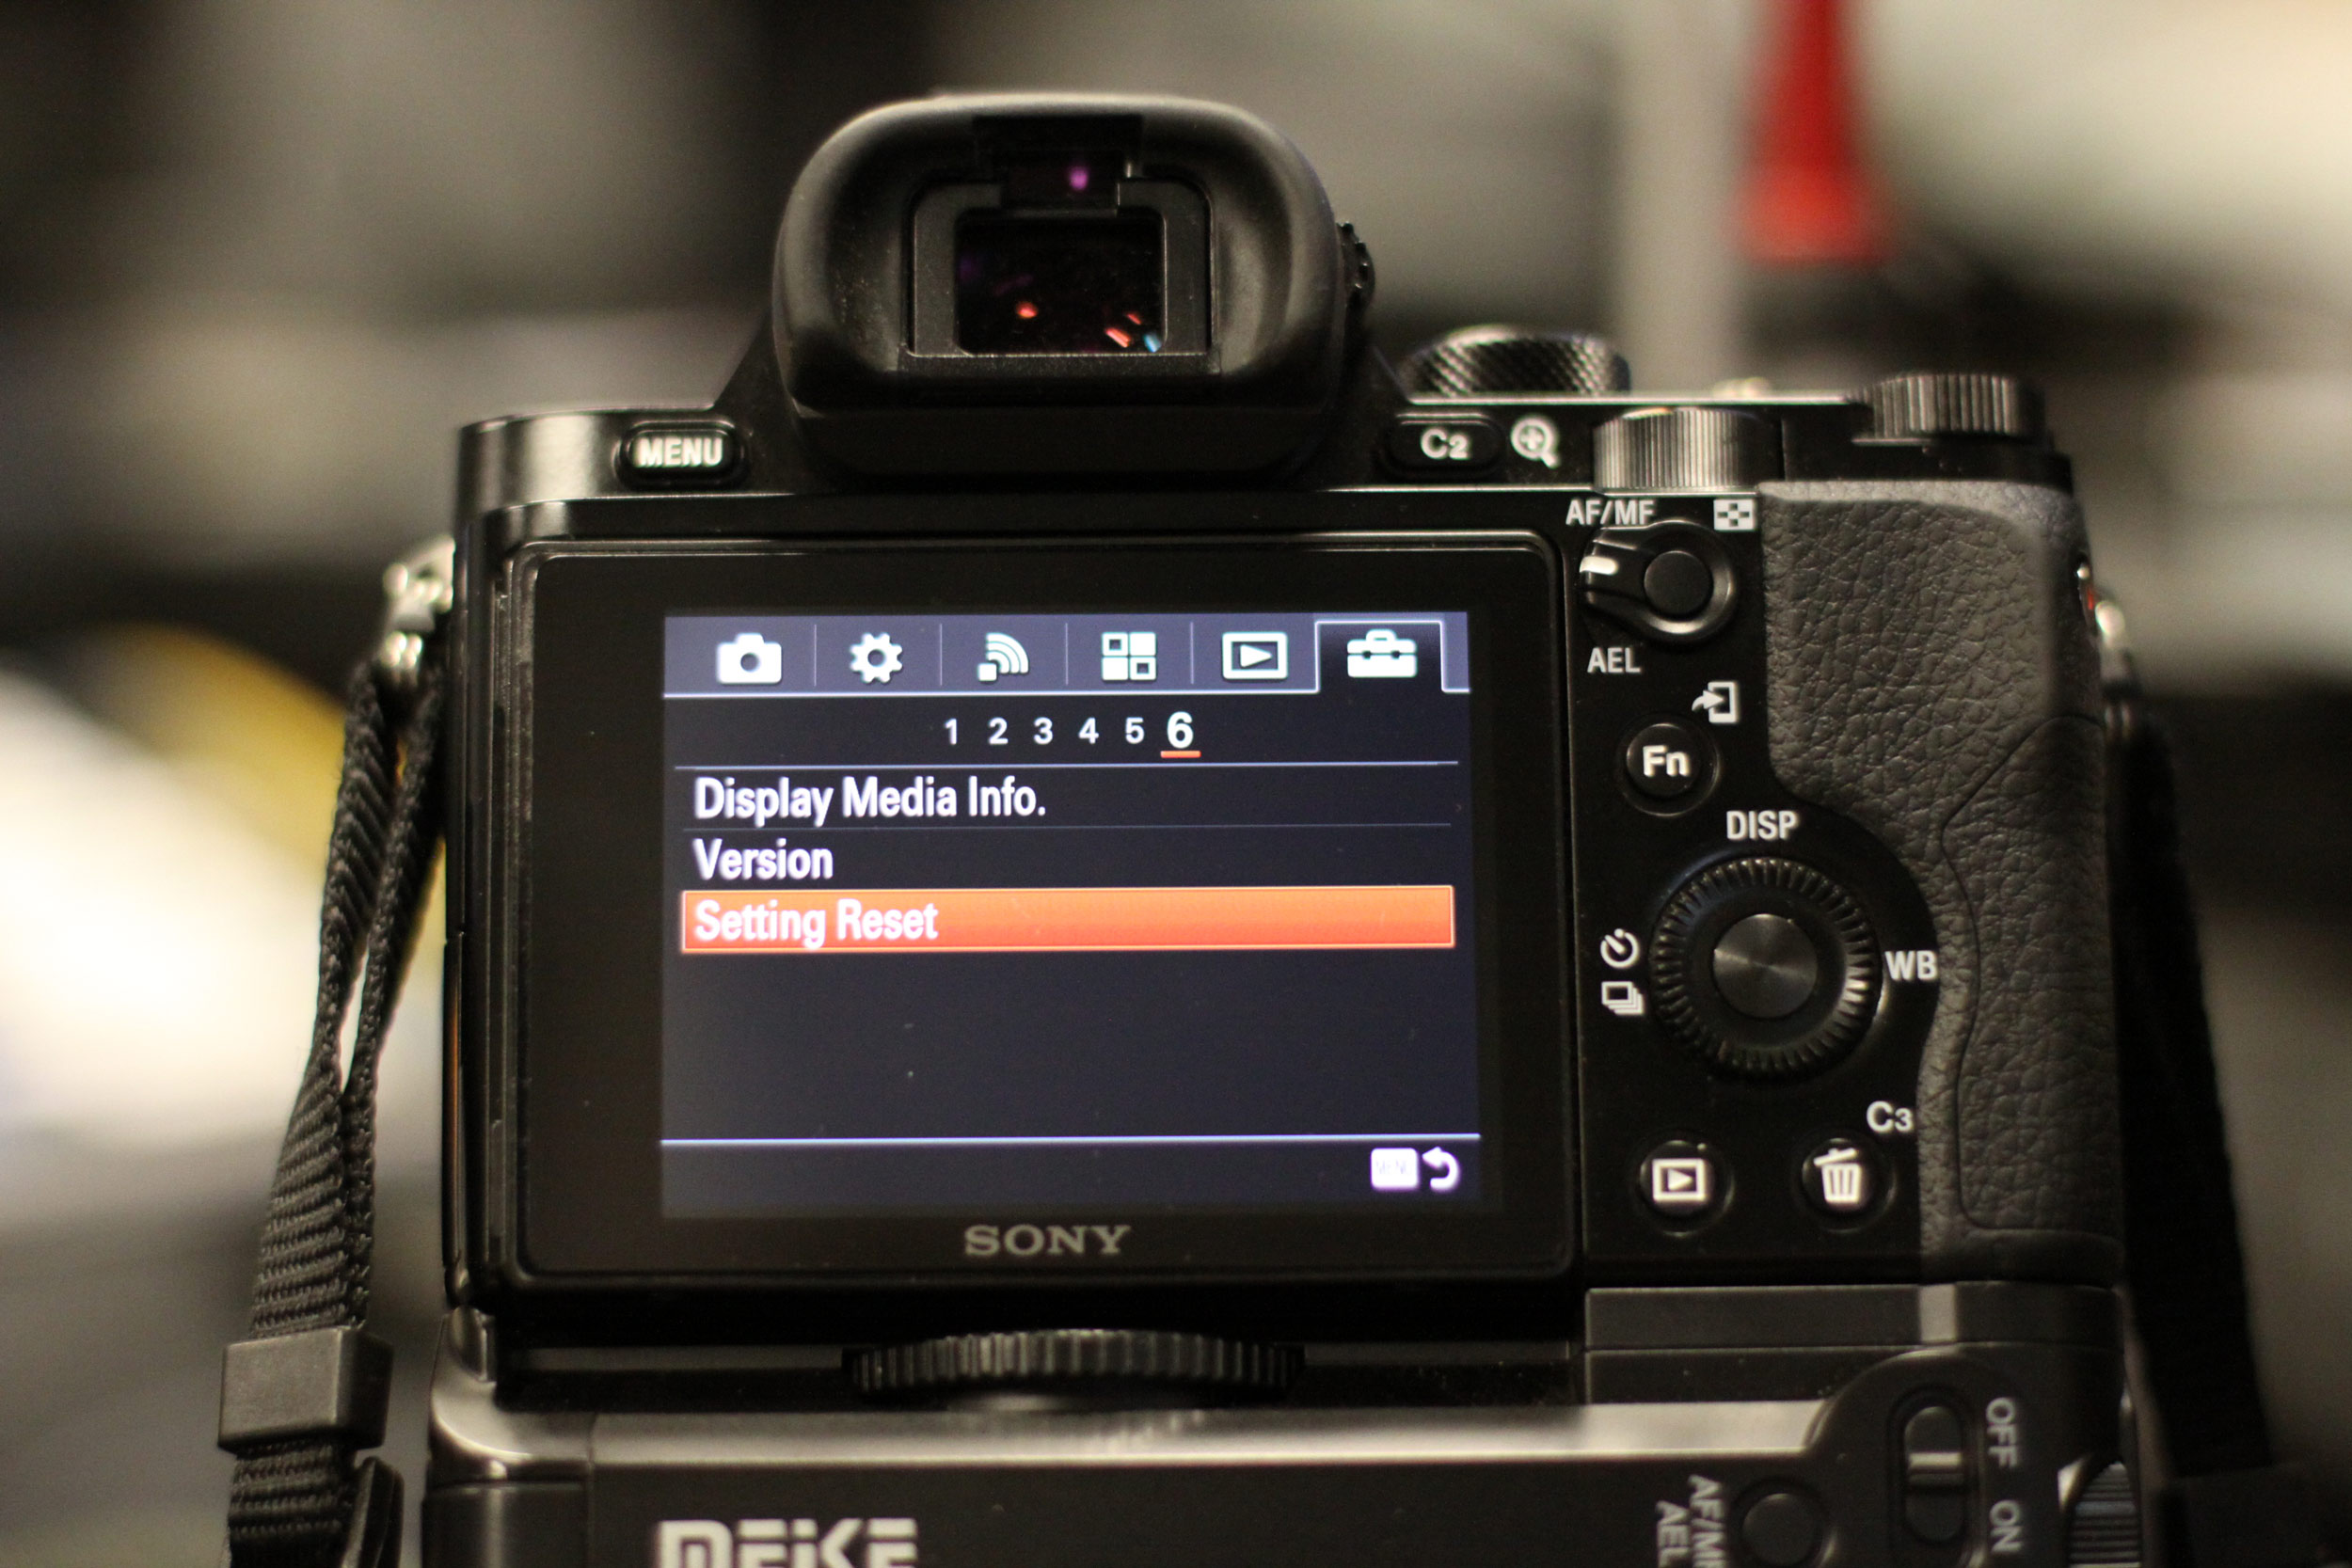 Sony A7 Settings are Stuck? Here's the Fix